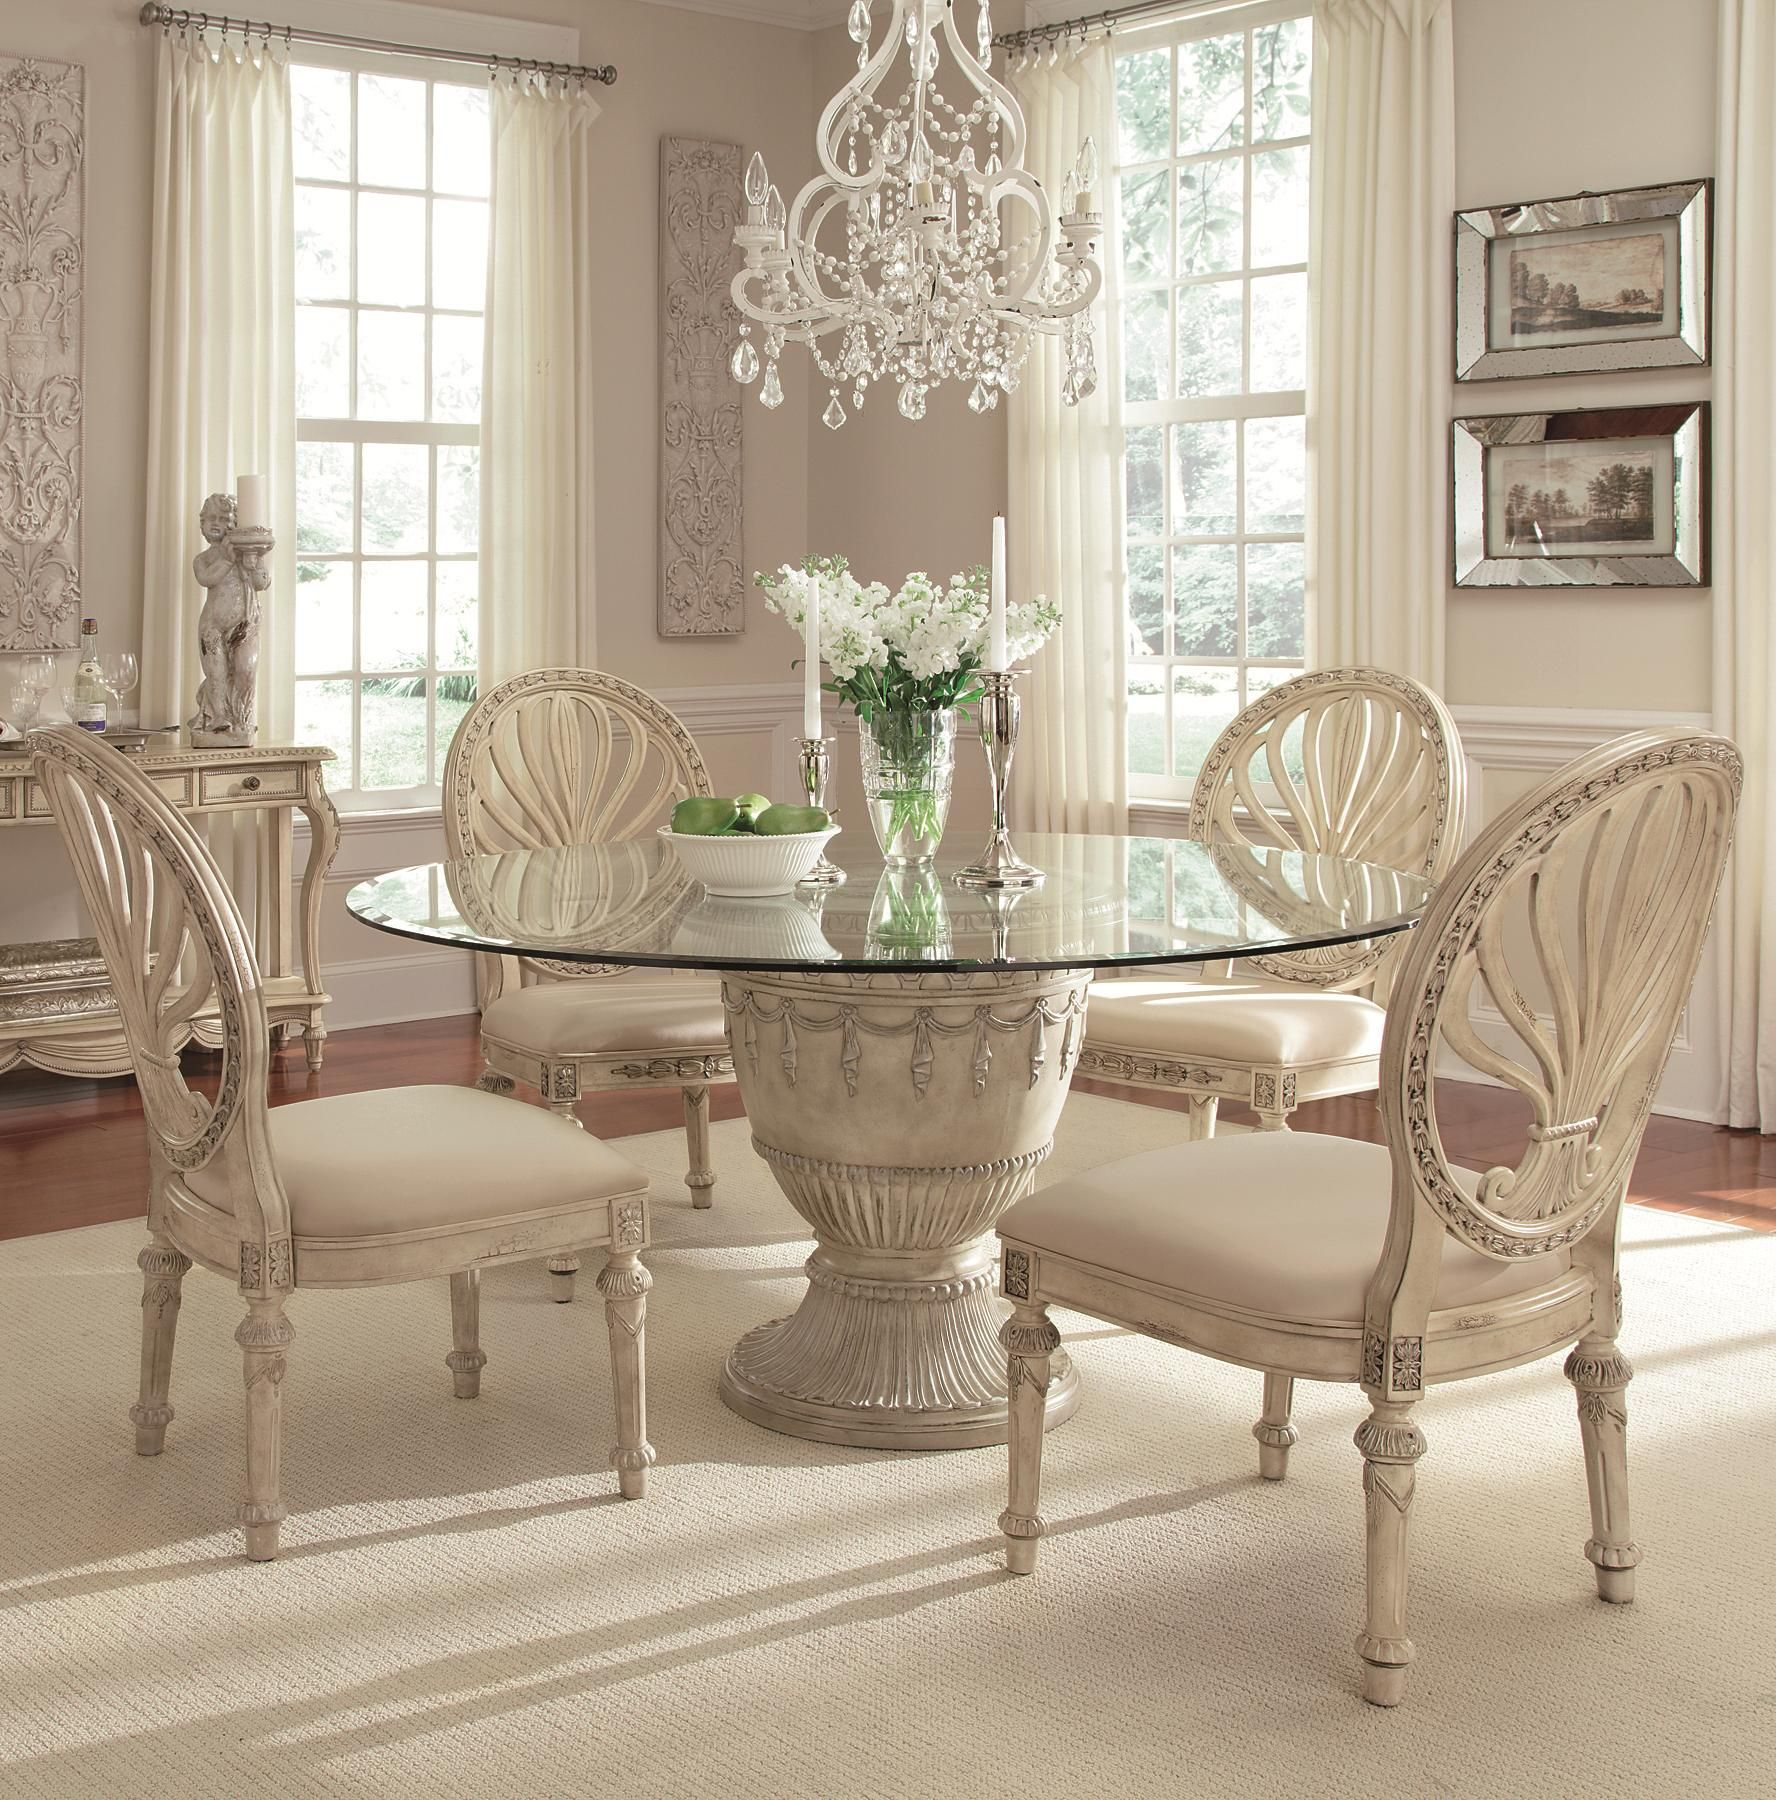 Room Empire II 5 Piece Round Table Dining Set By Schnadig